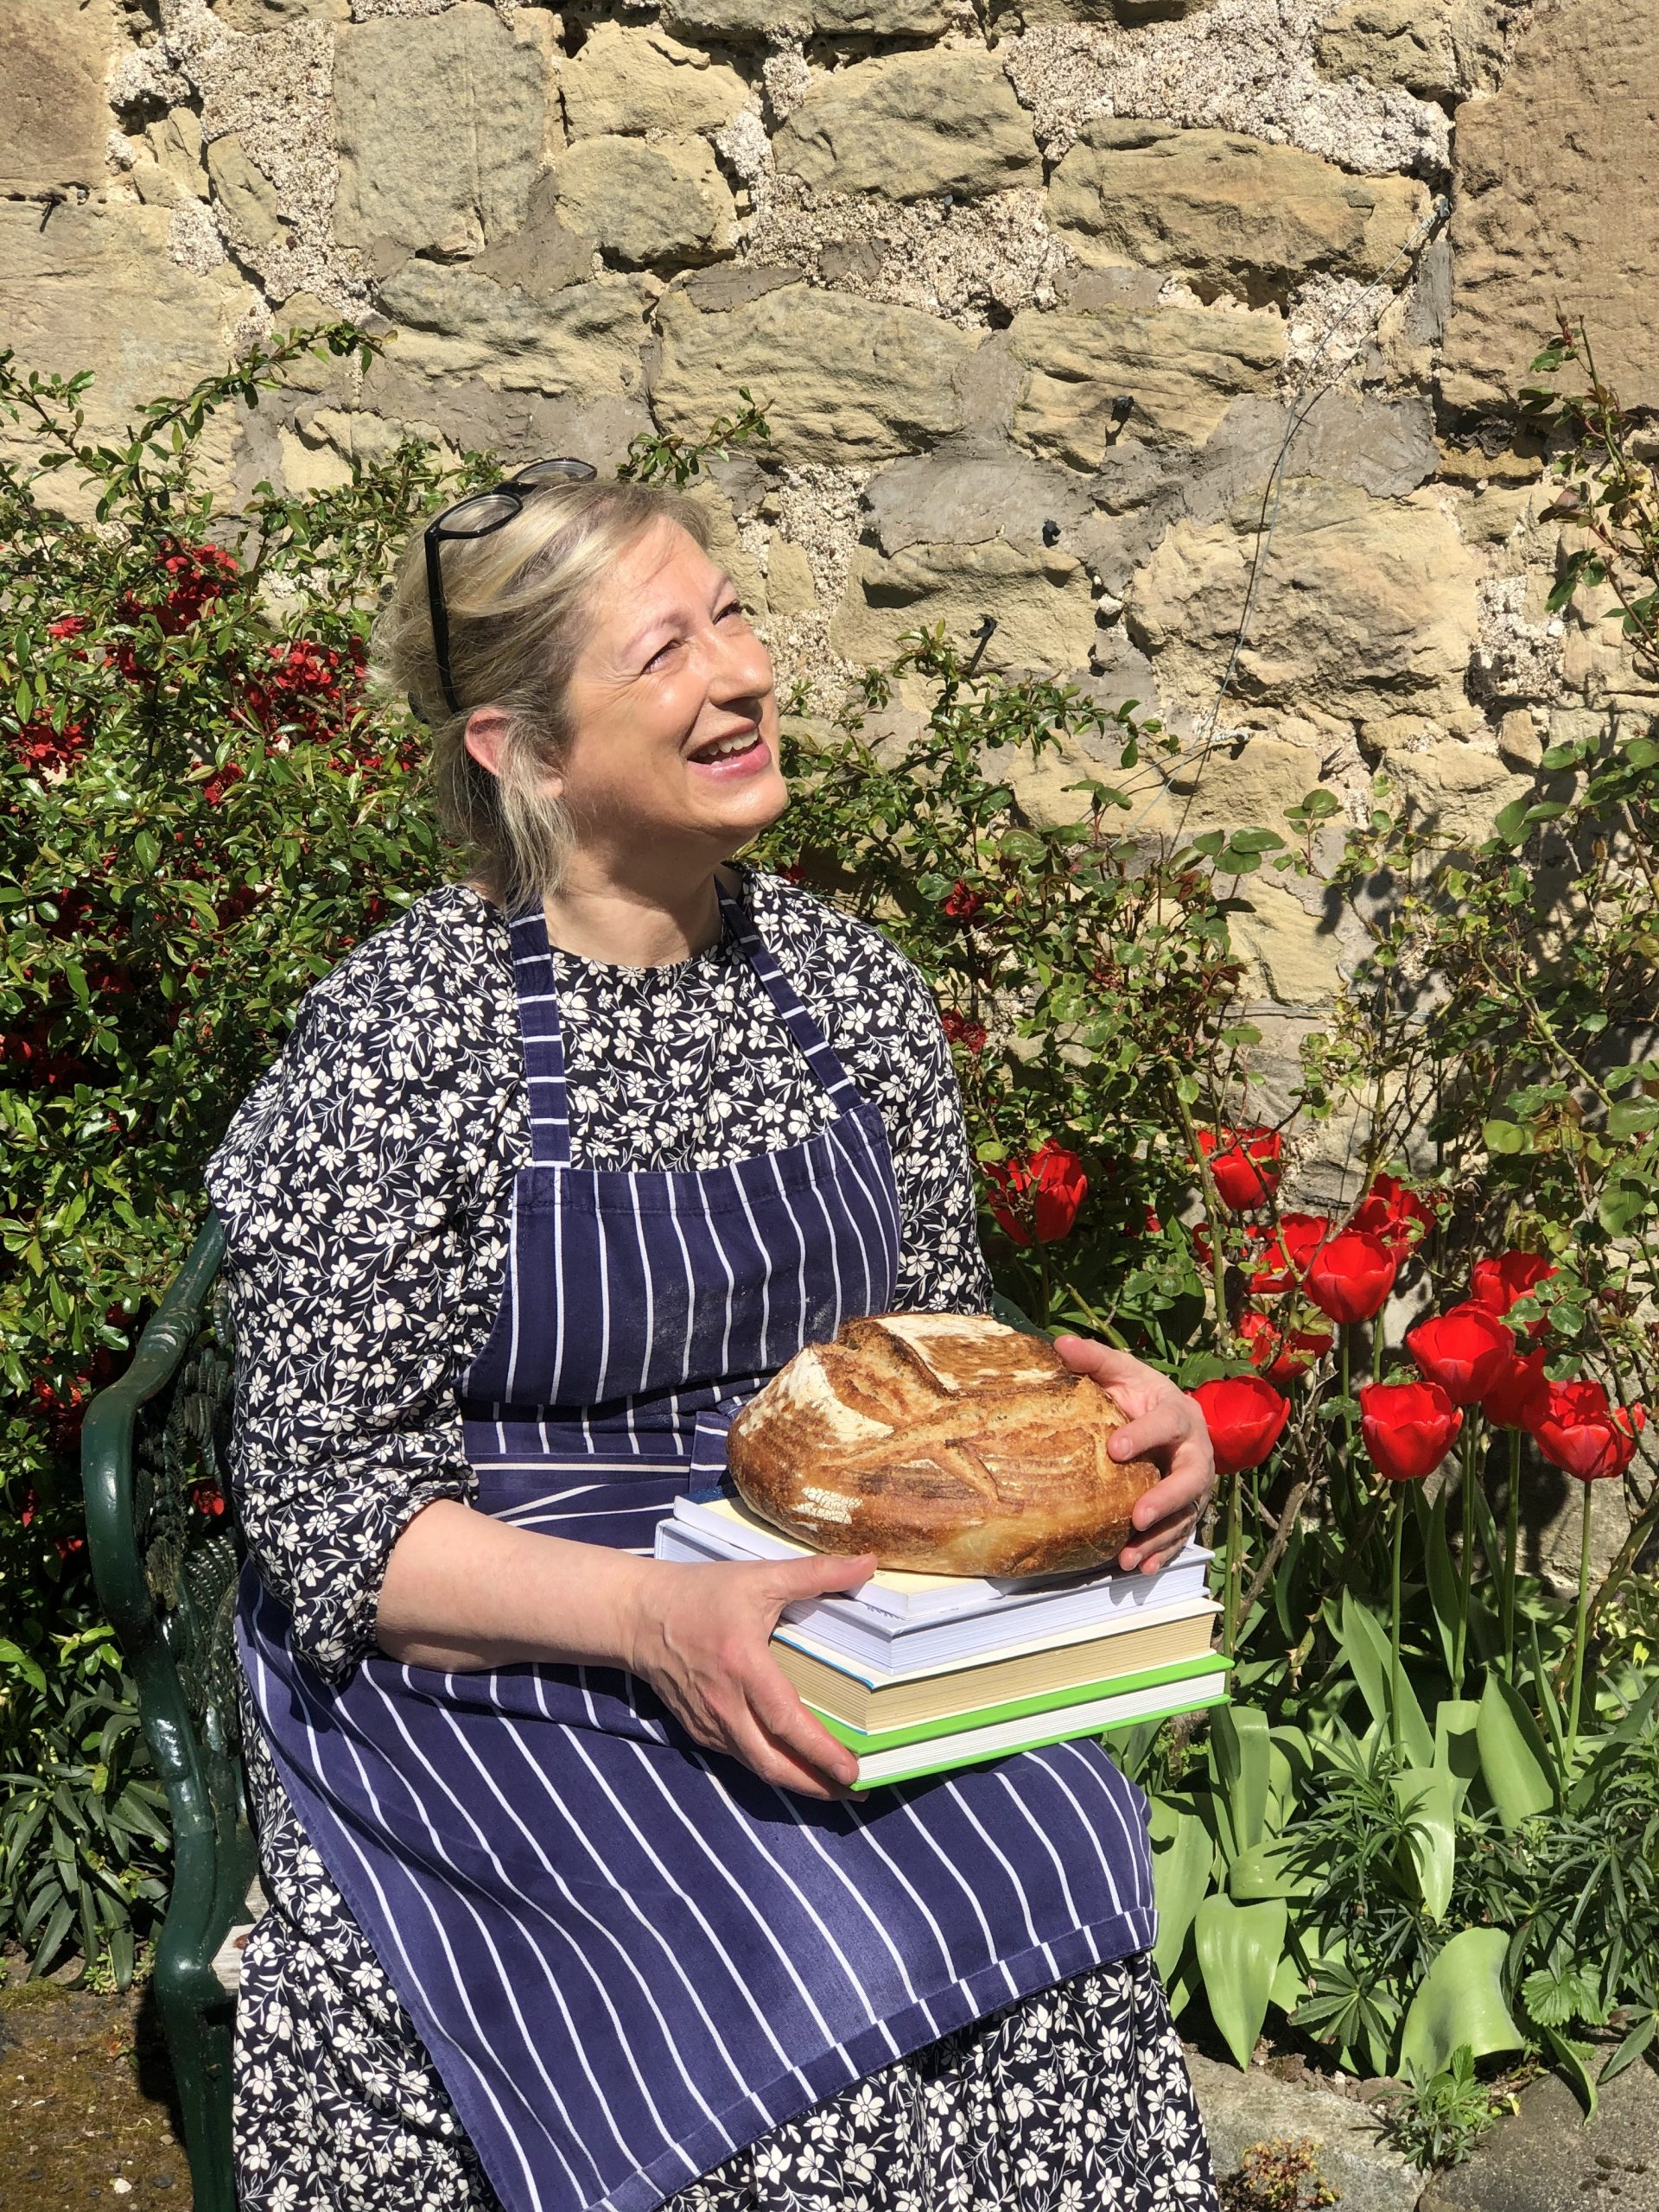 Pauline Beaumont will be speaking about her book: Bread Therapy: The Mindful Art of Baking Bread at Berwick Literary Festival 2020